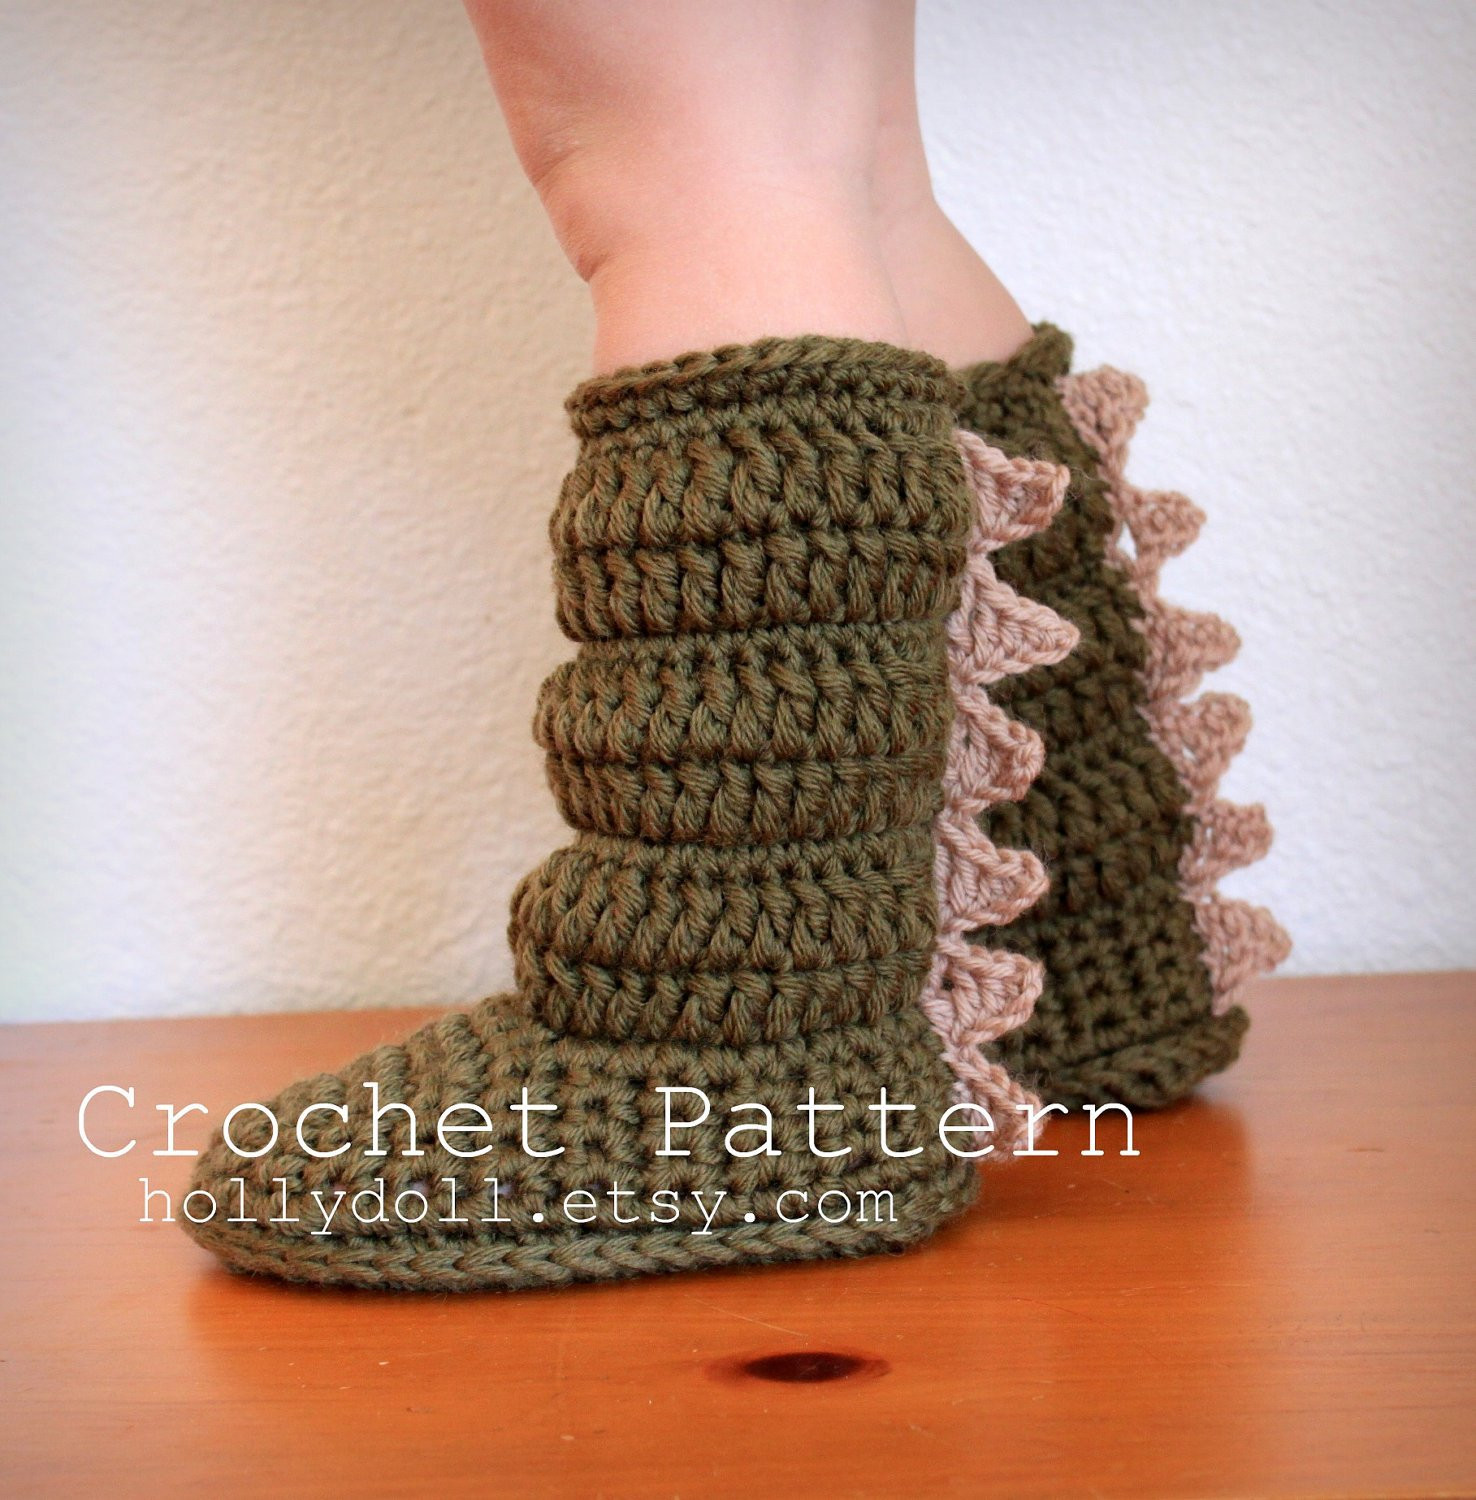 Awesome Crochet Pattern toddler Cozies Cozy Boots for Boys and Crochet toddler Slippers Of Delightful 50 Images Crochet toddler Slippers